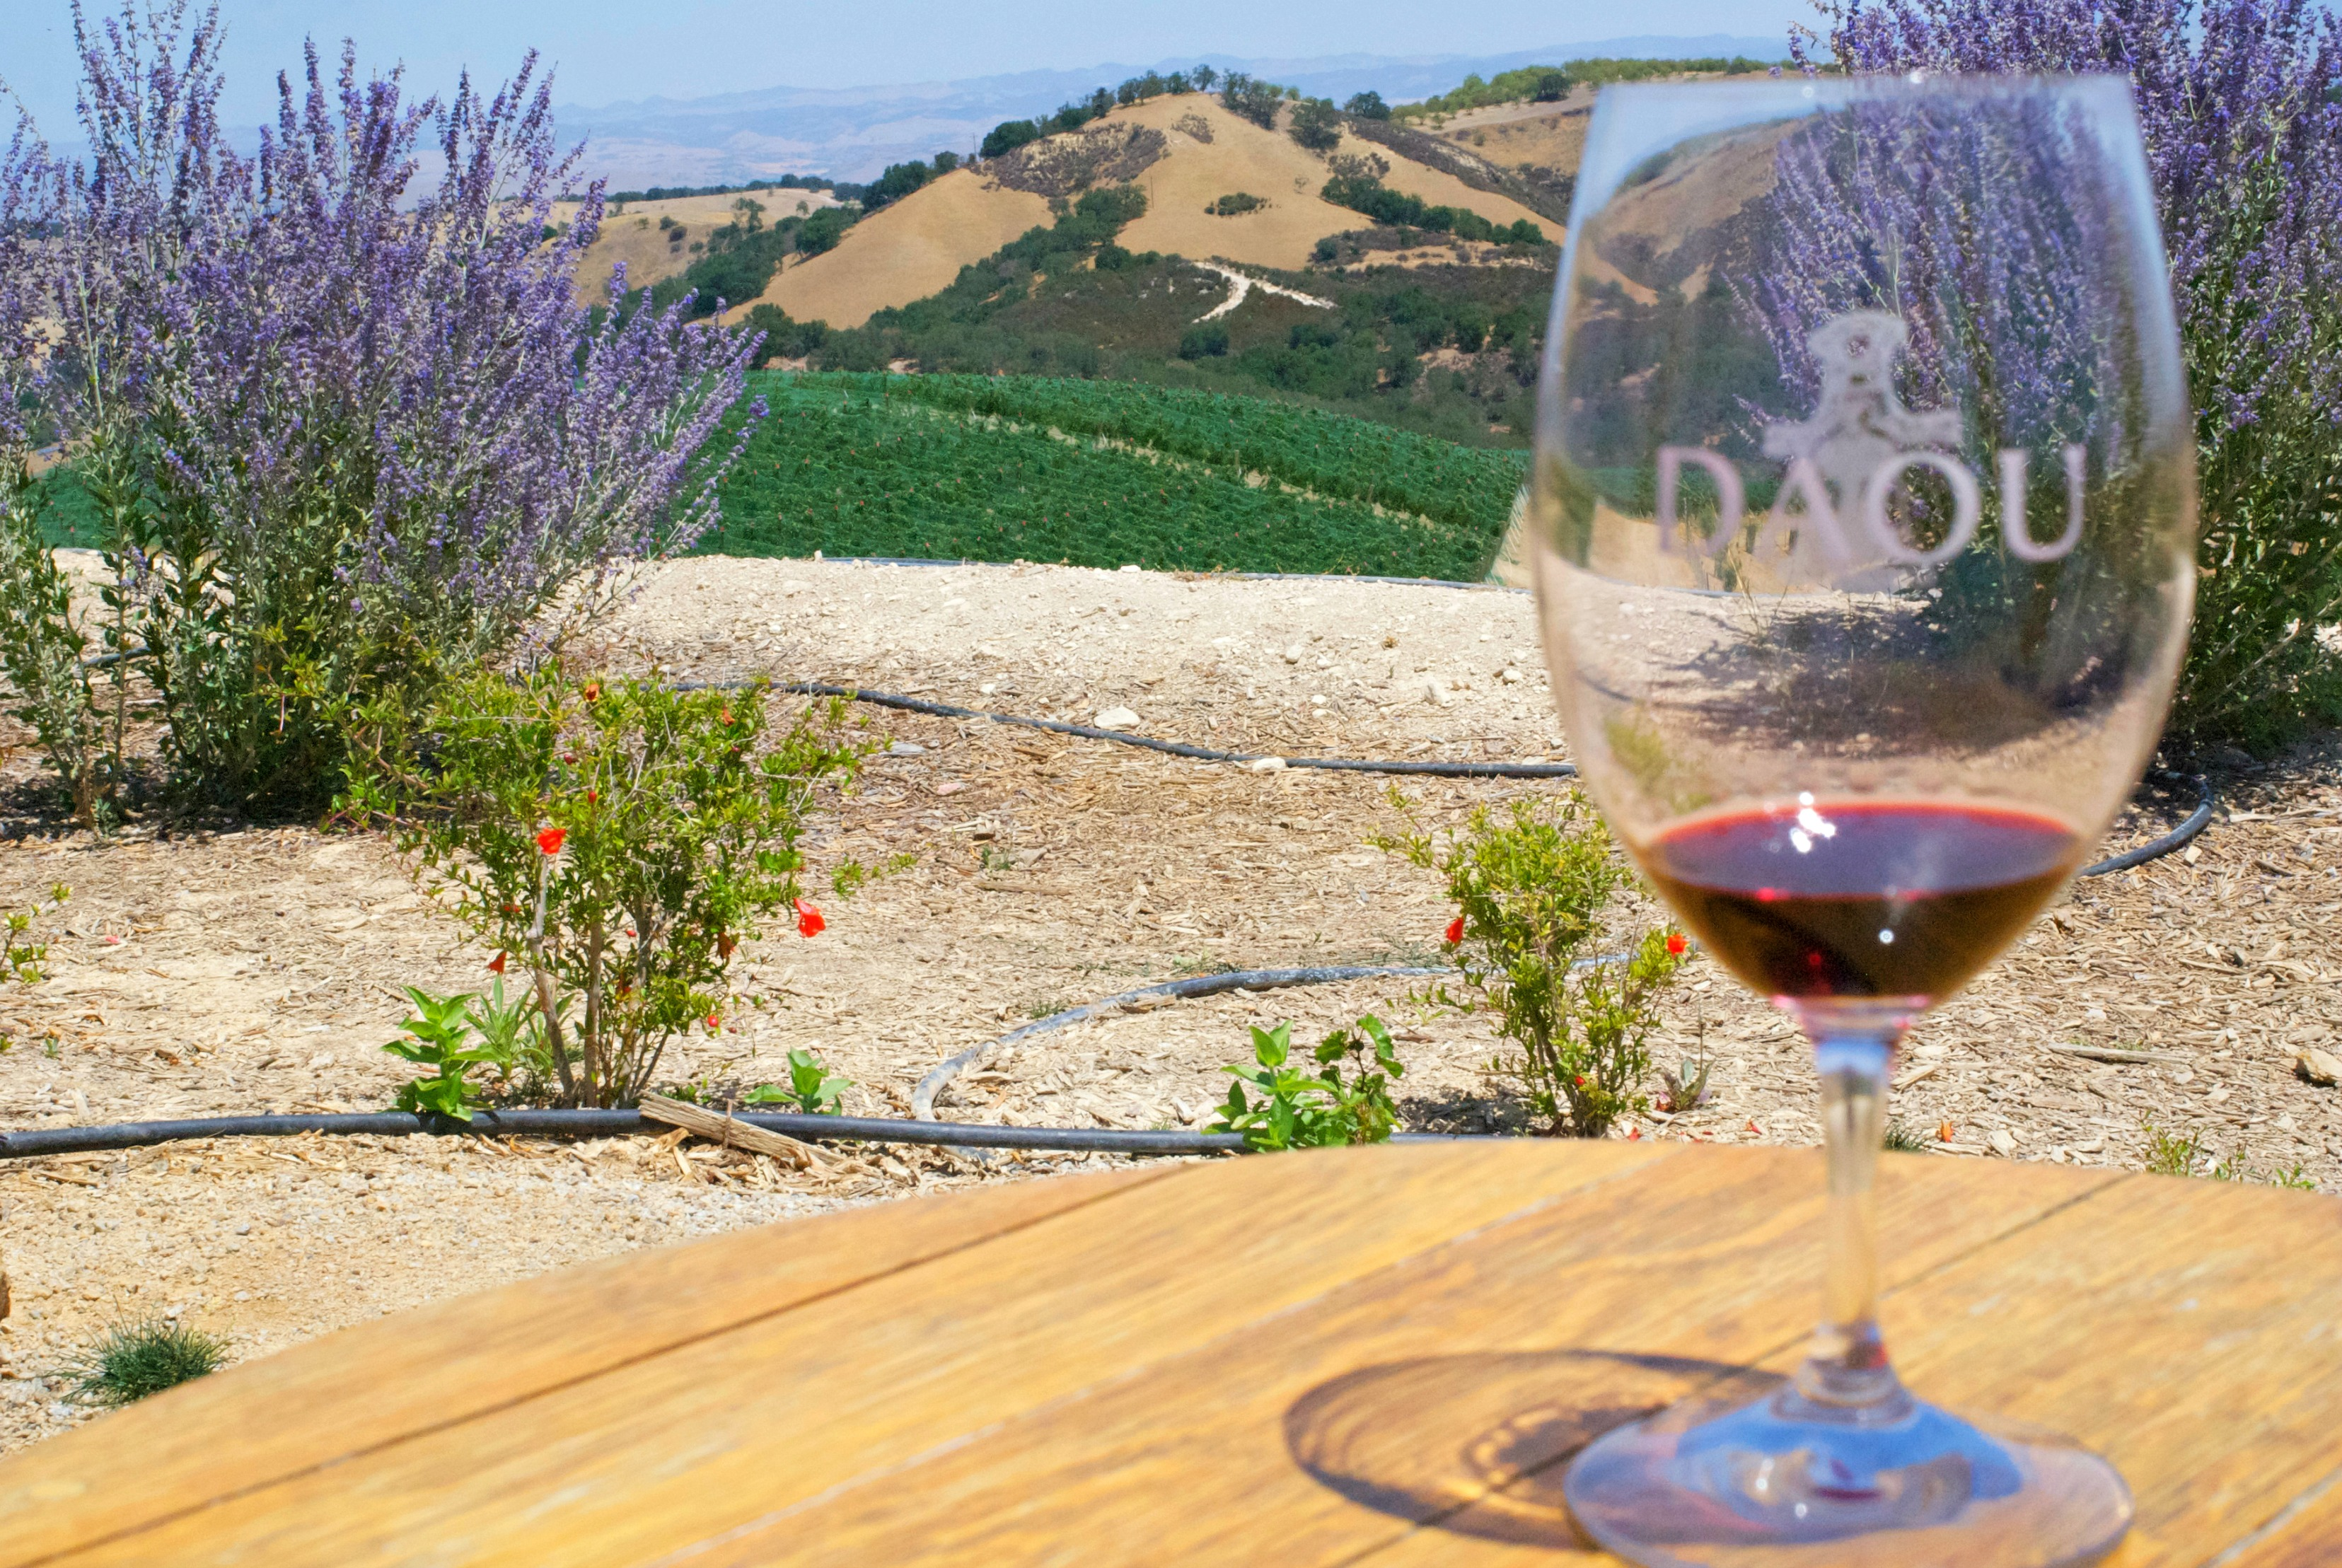 Daou Winery spectacular view